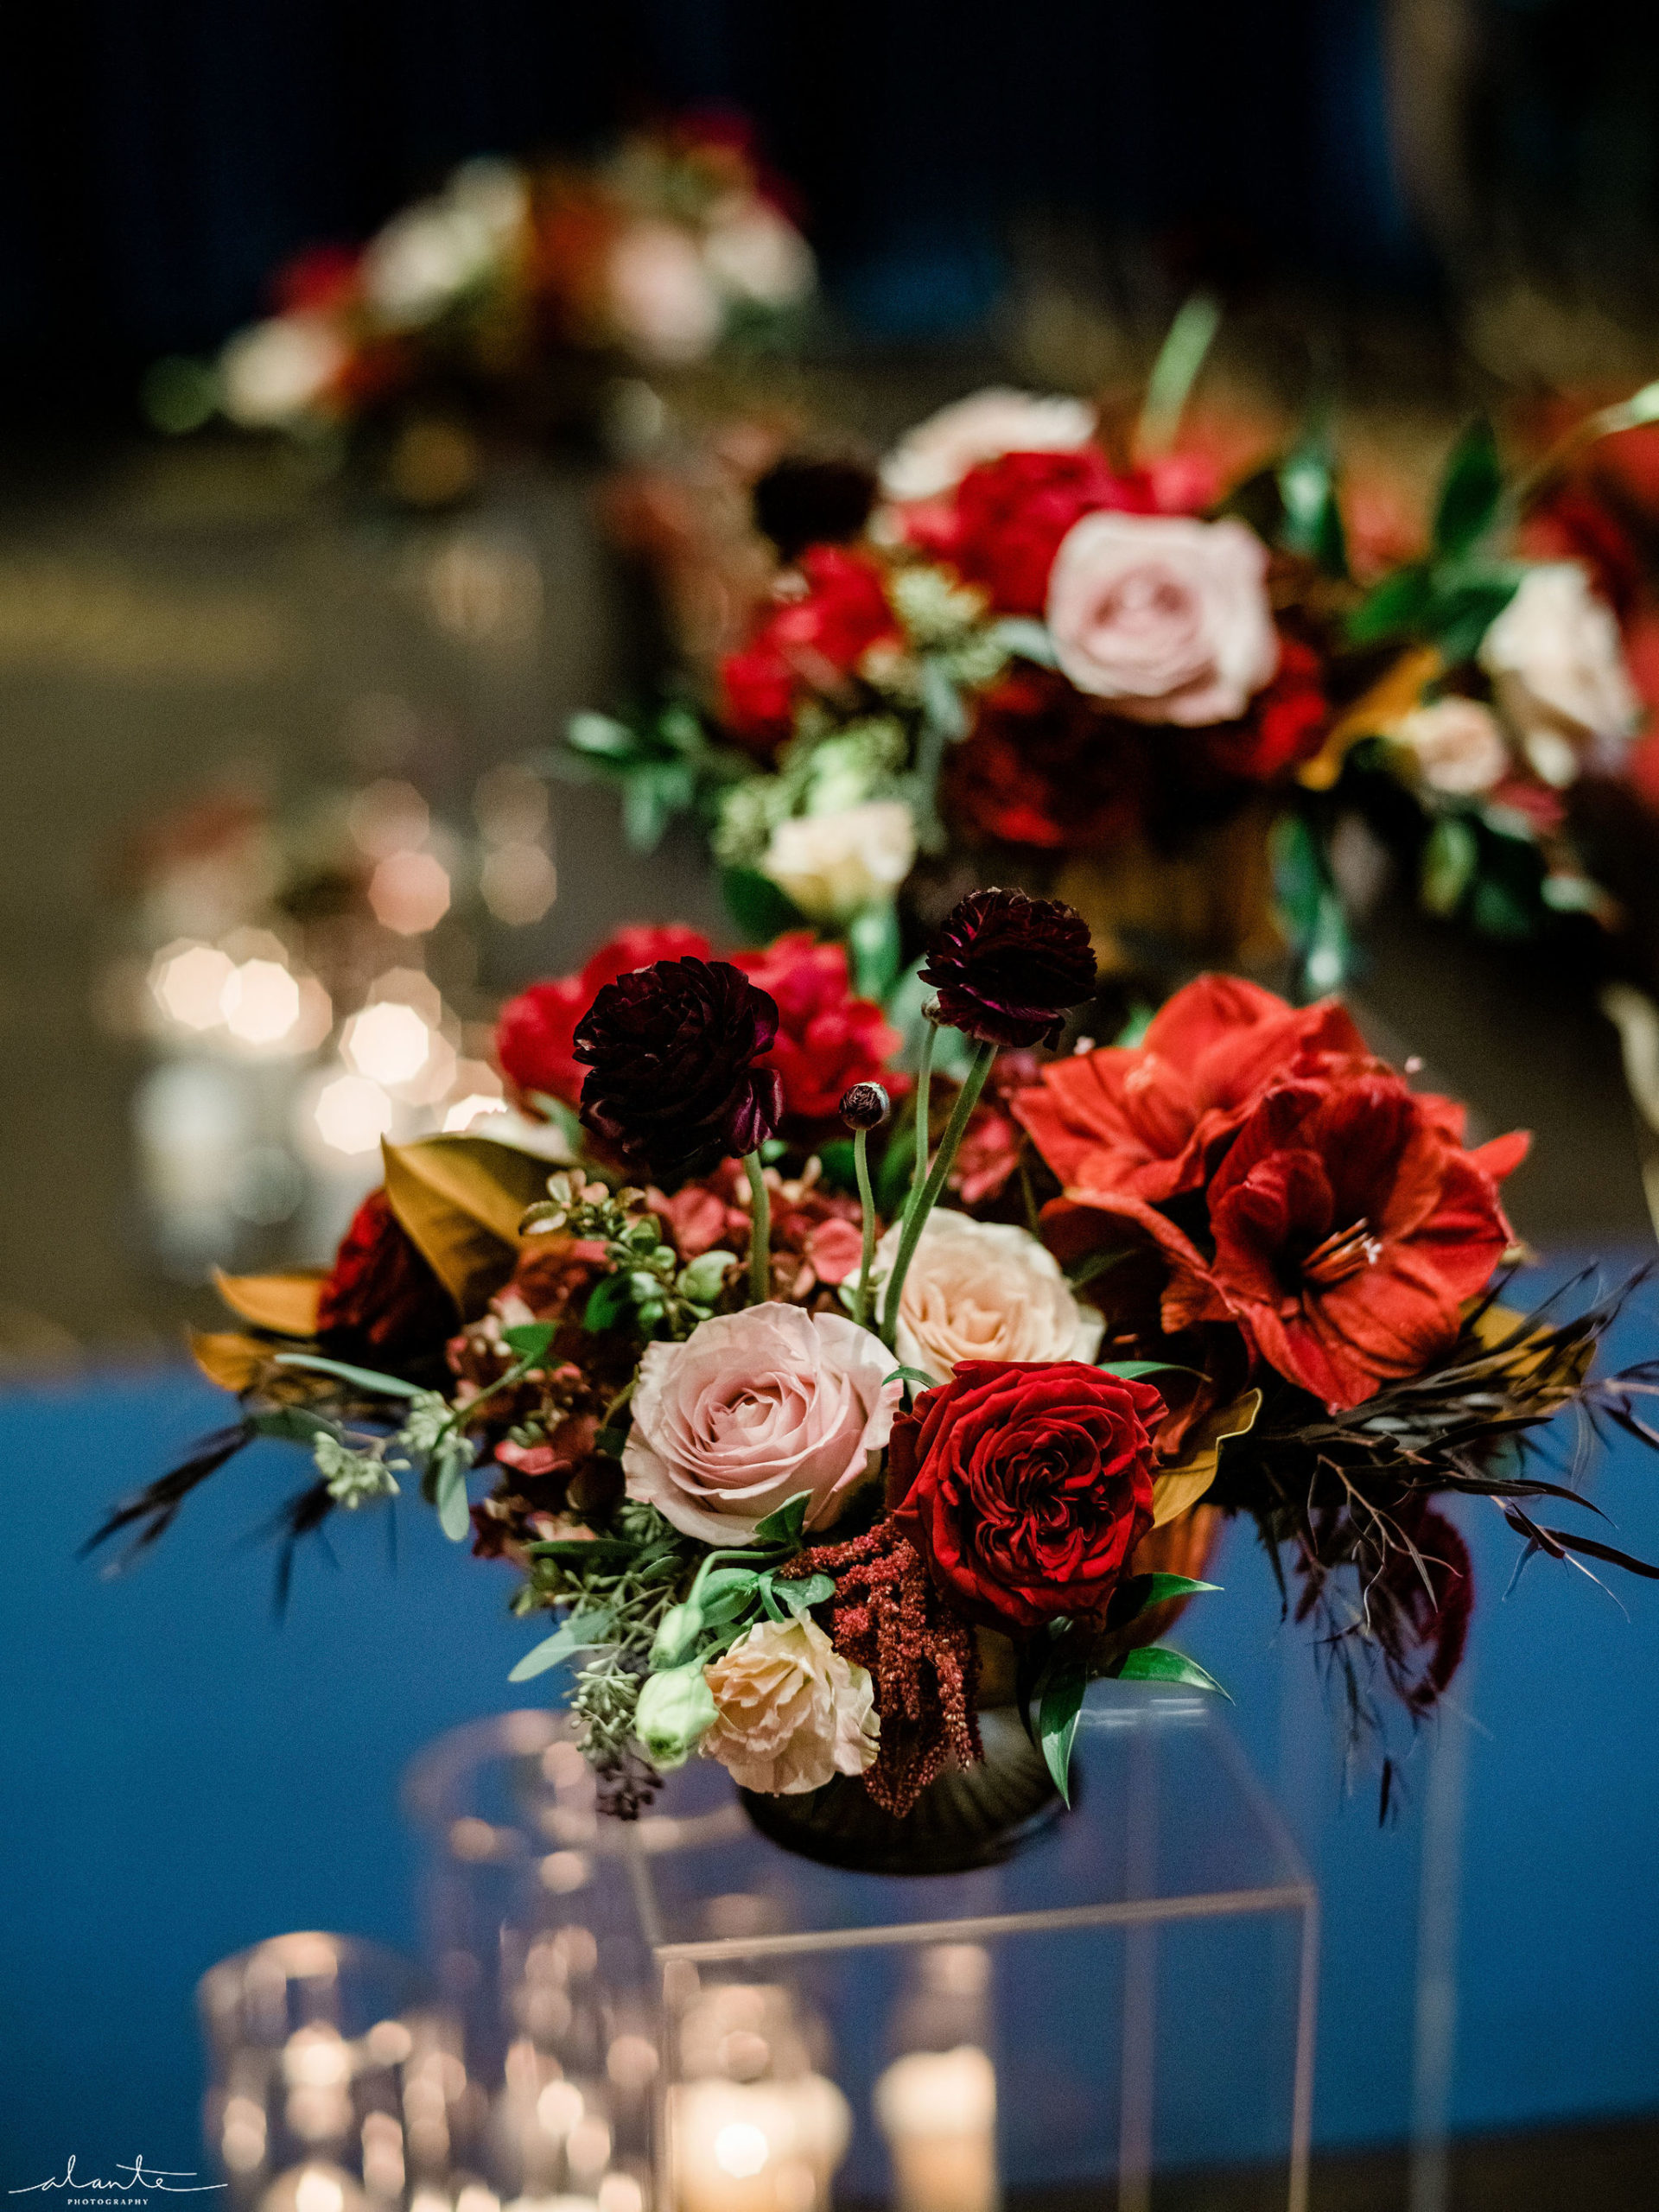 Low compote arrangements with red amaryllis, roses and other winter floral for a red winter wedding.